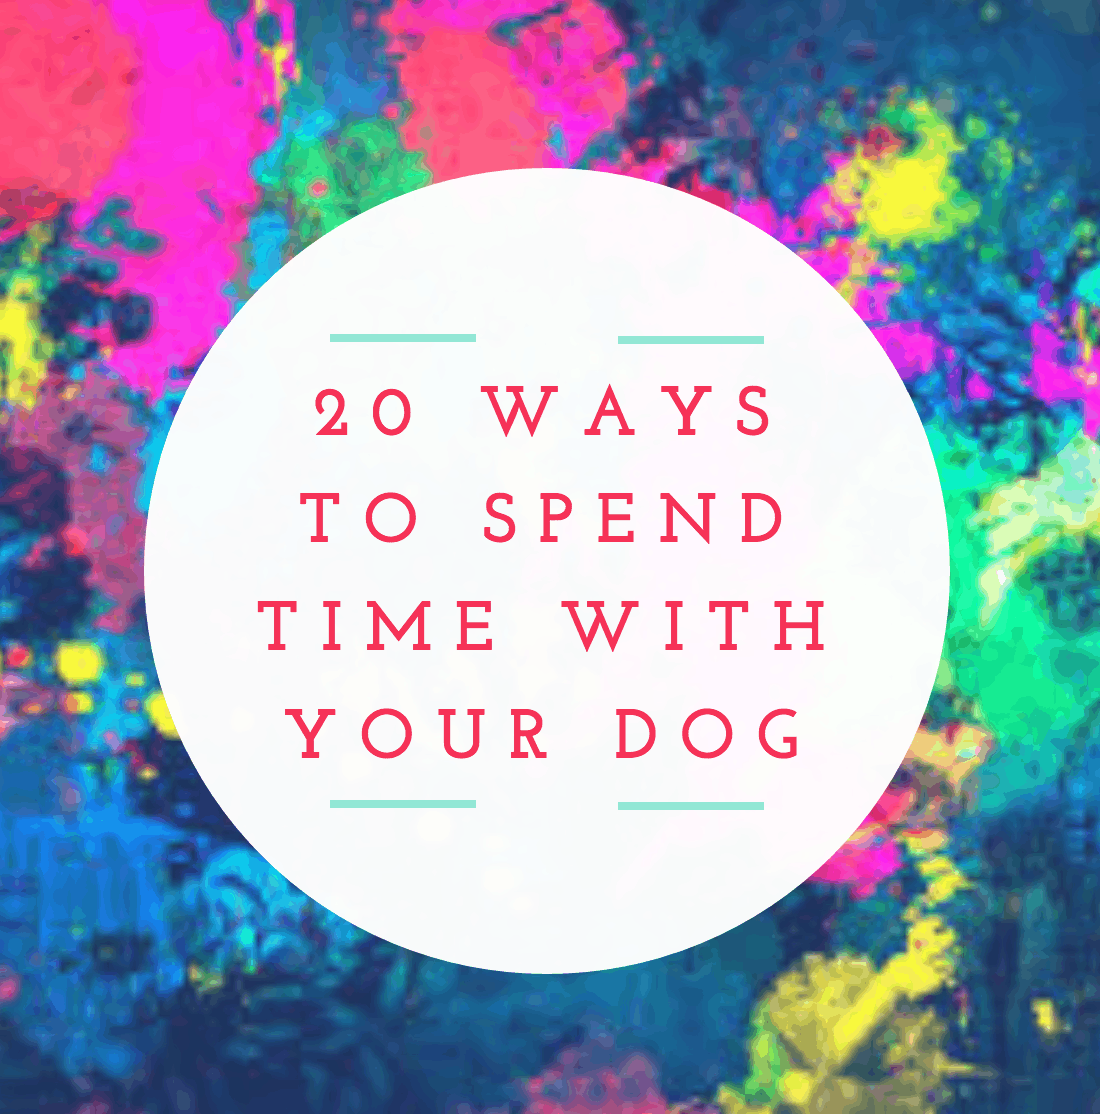 It's National Dog Week! 20 Ways To Celebrate #FriendsofBeneful (Plus Enter To Win 1 Year Supply Of Beneful)